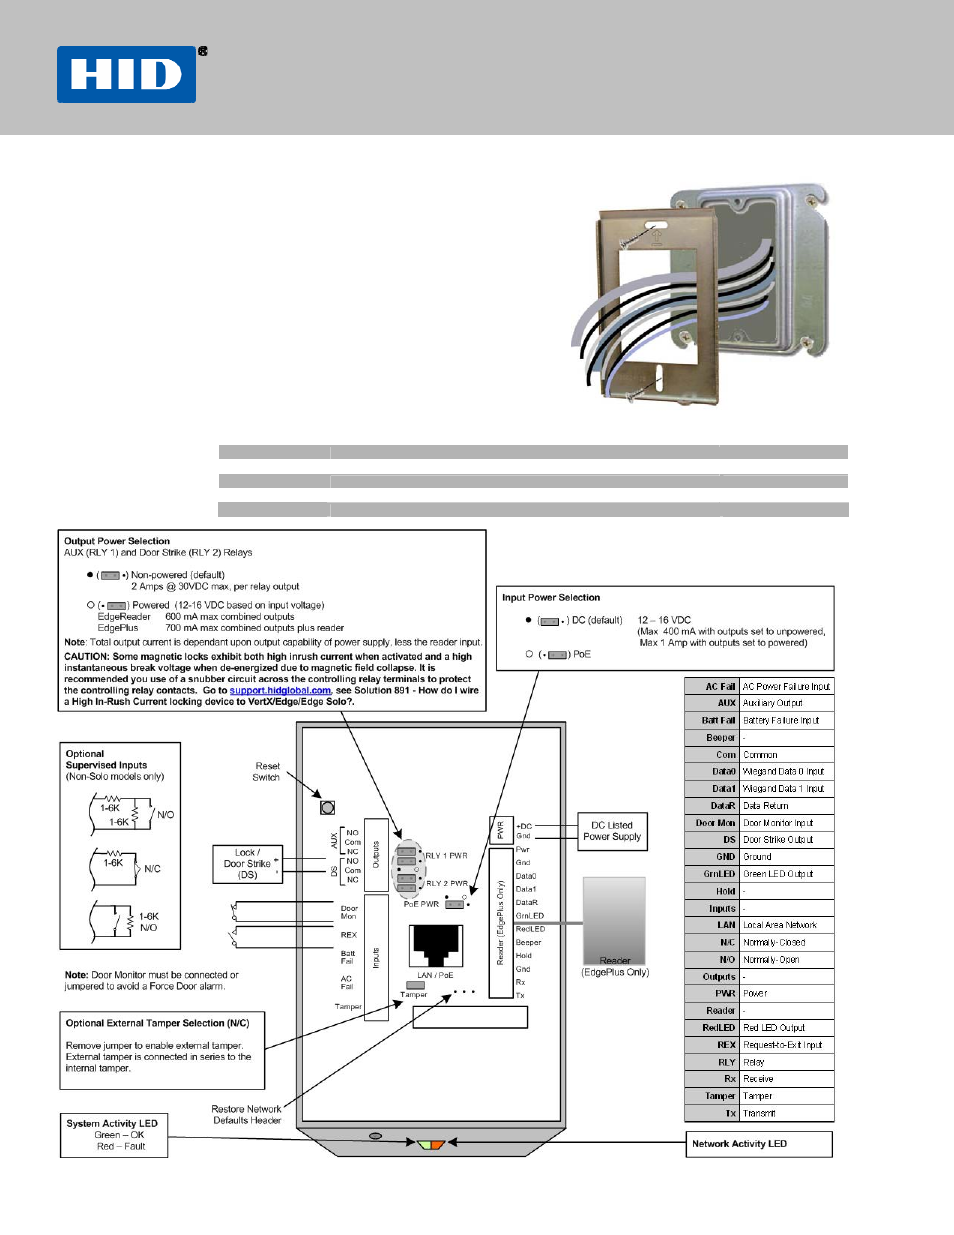 hid edge reader installation guide user manual 2 pages also for HID Installation Diagram